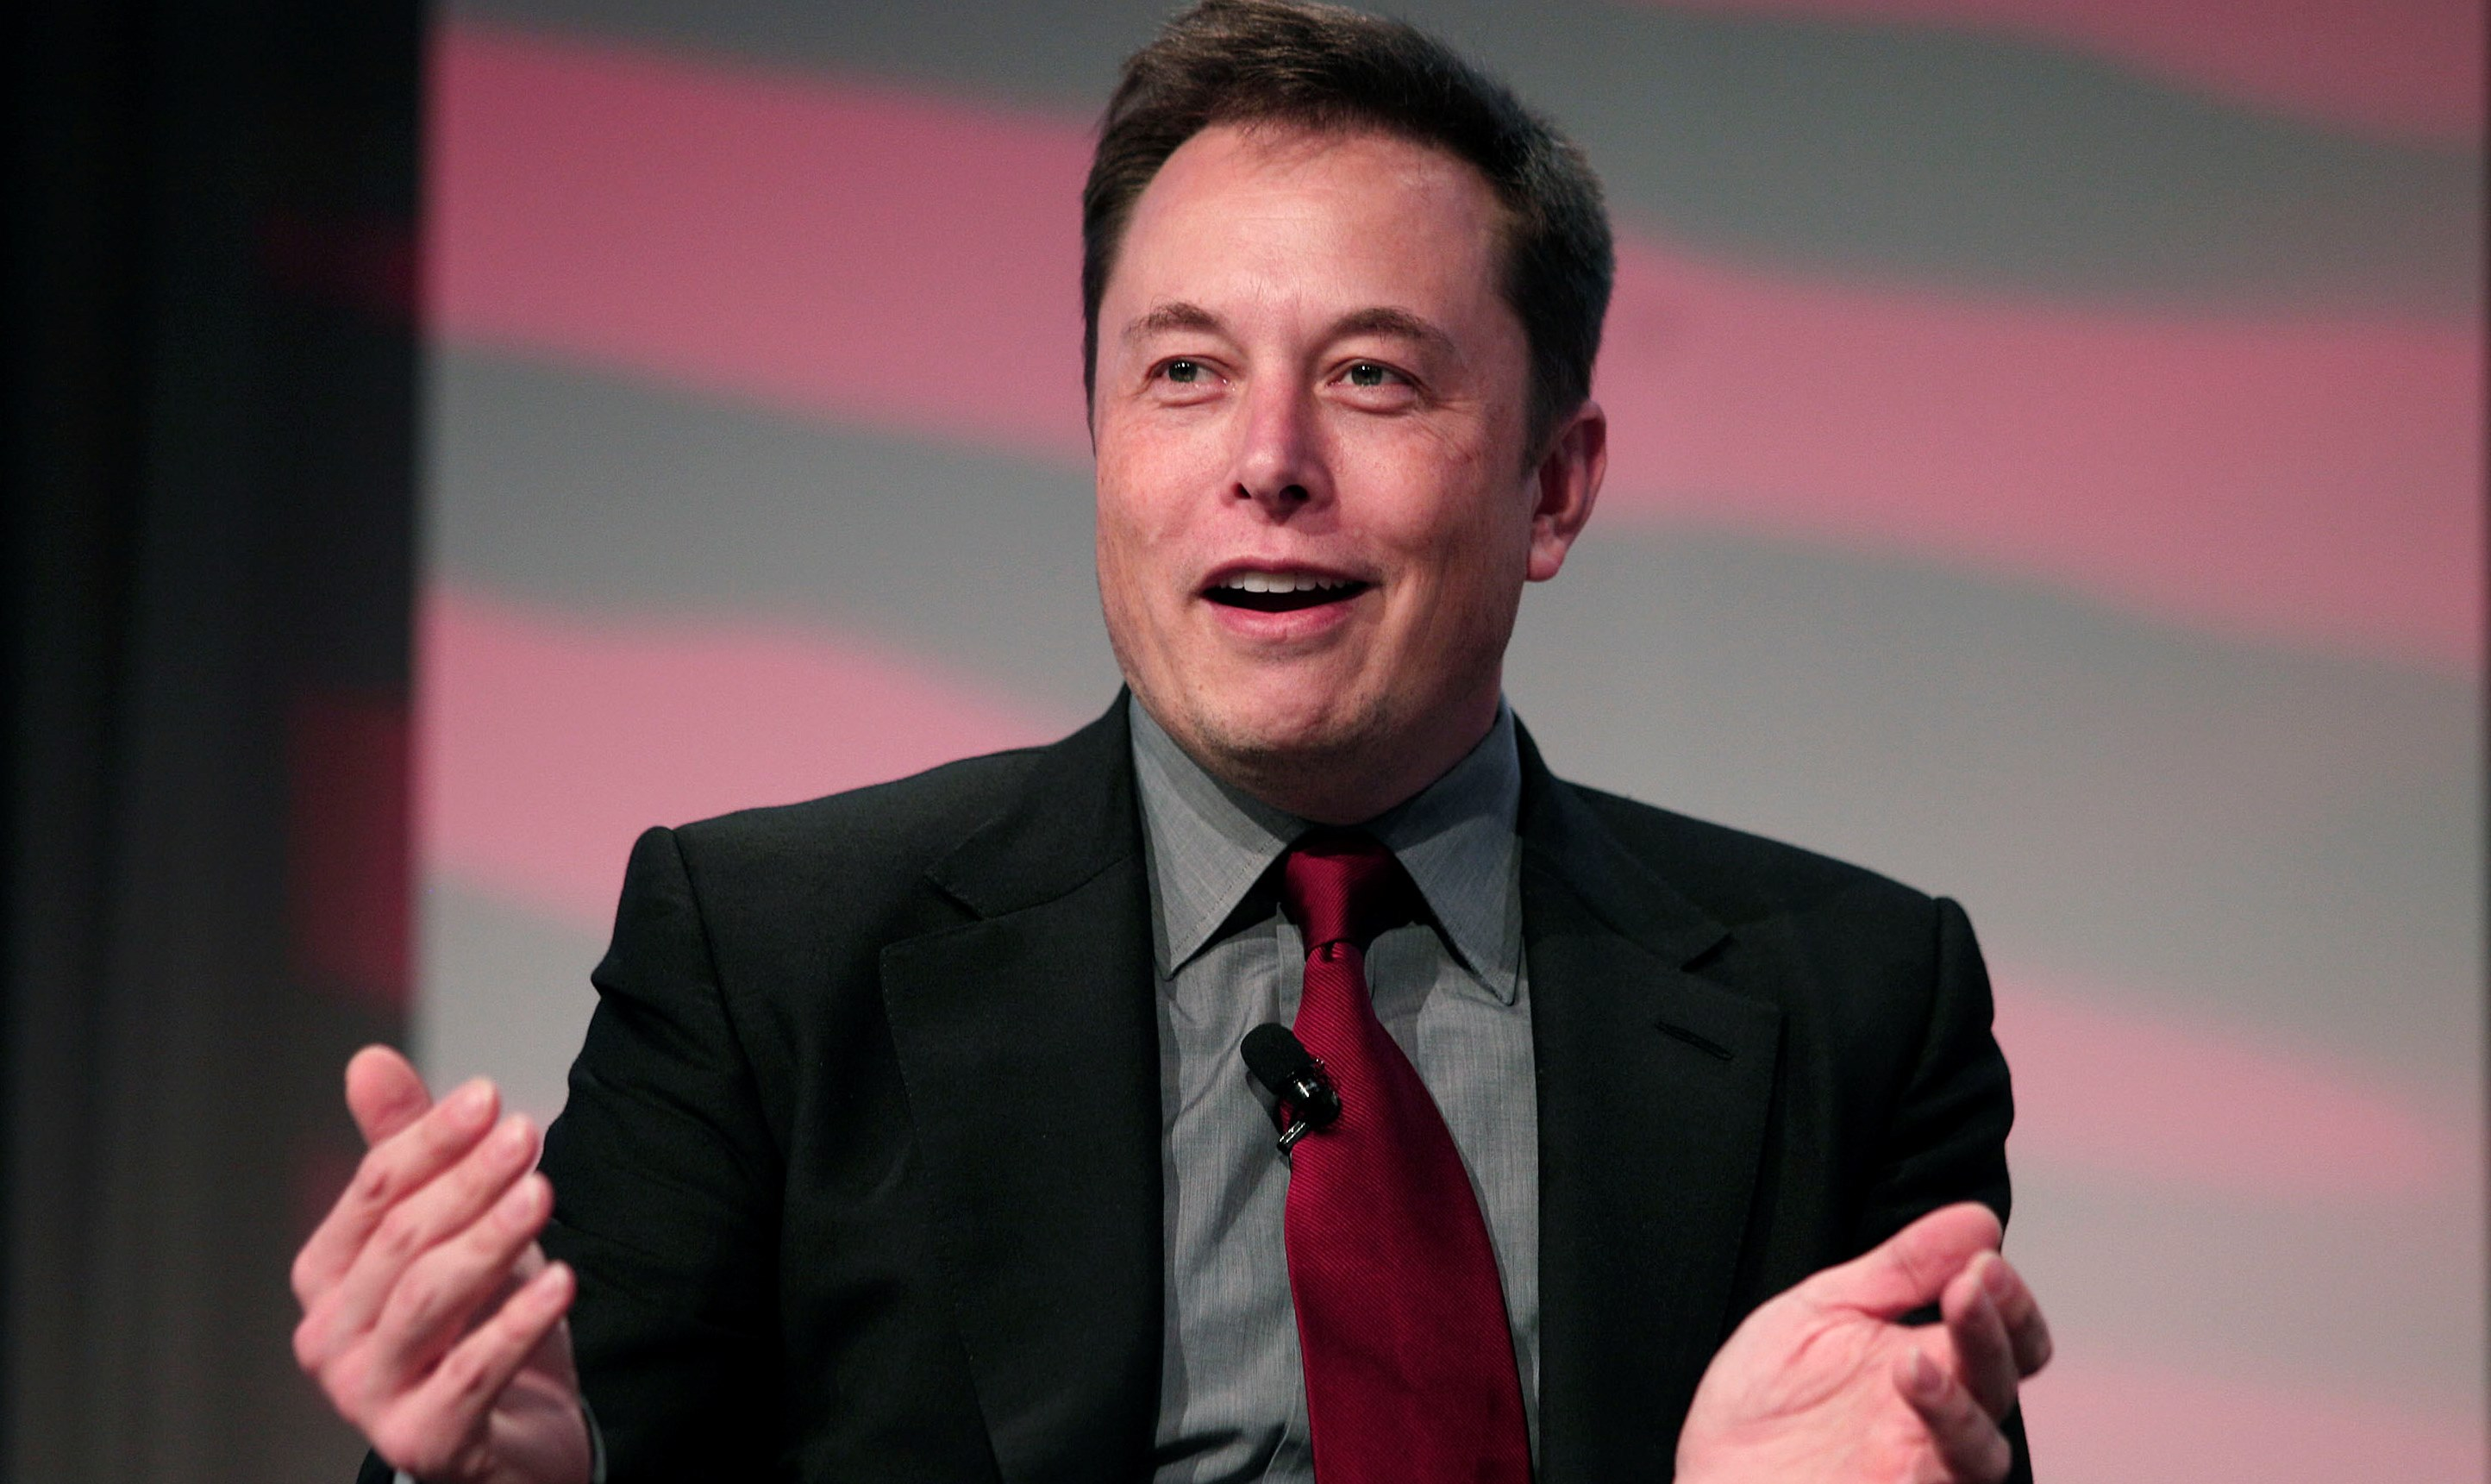 Elon Musk made statements last month about taking Tesla private. (Getty Images)